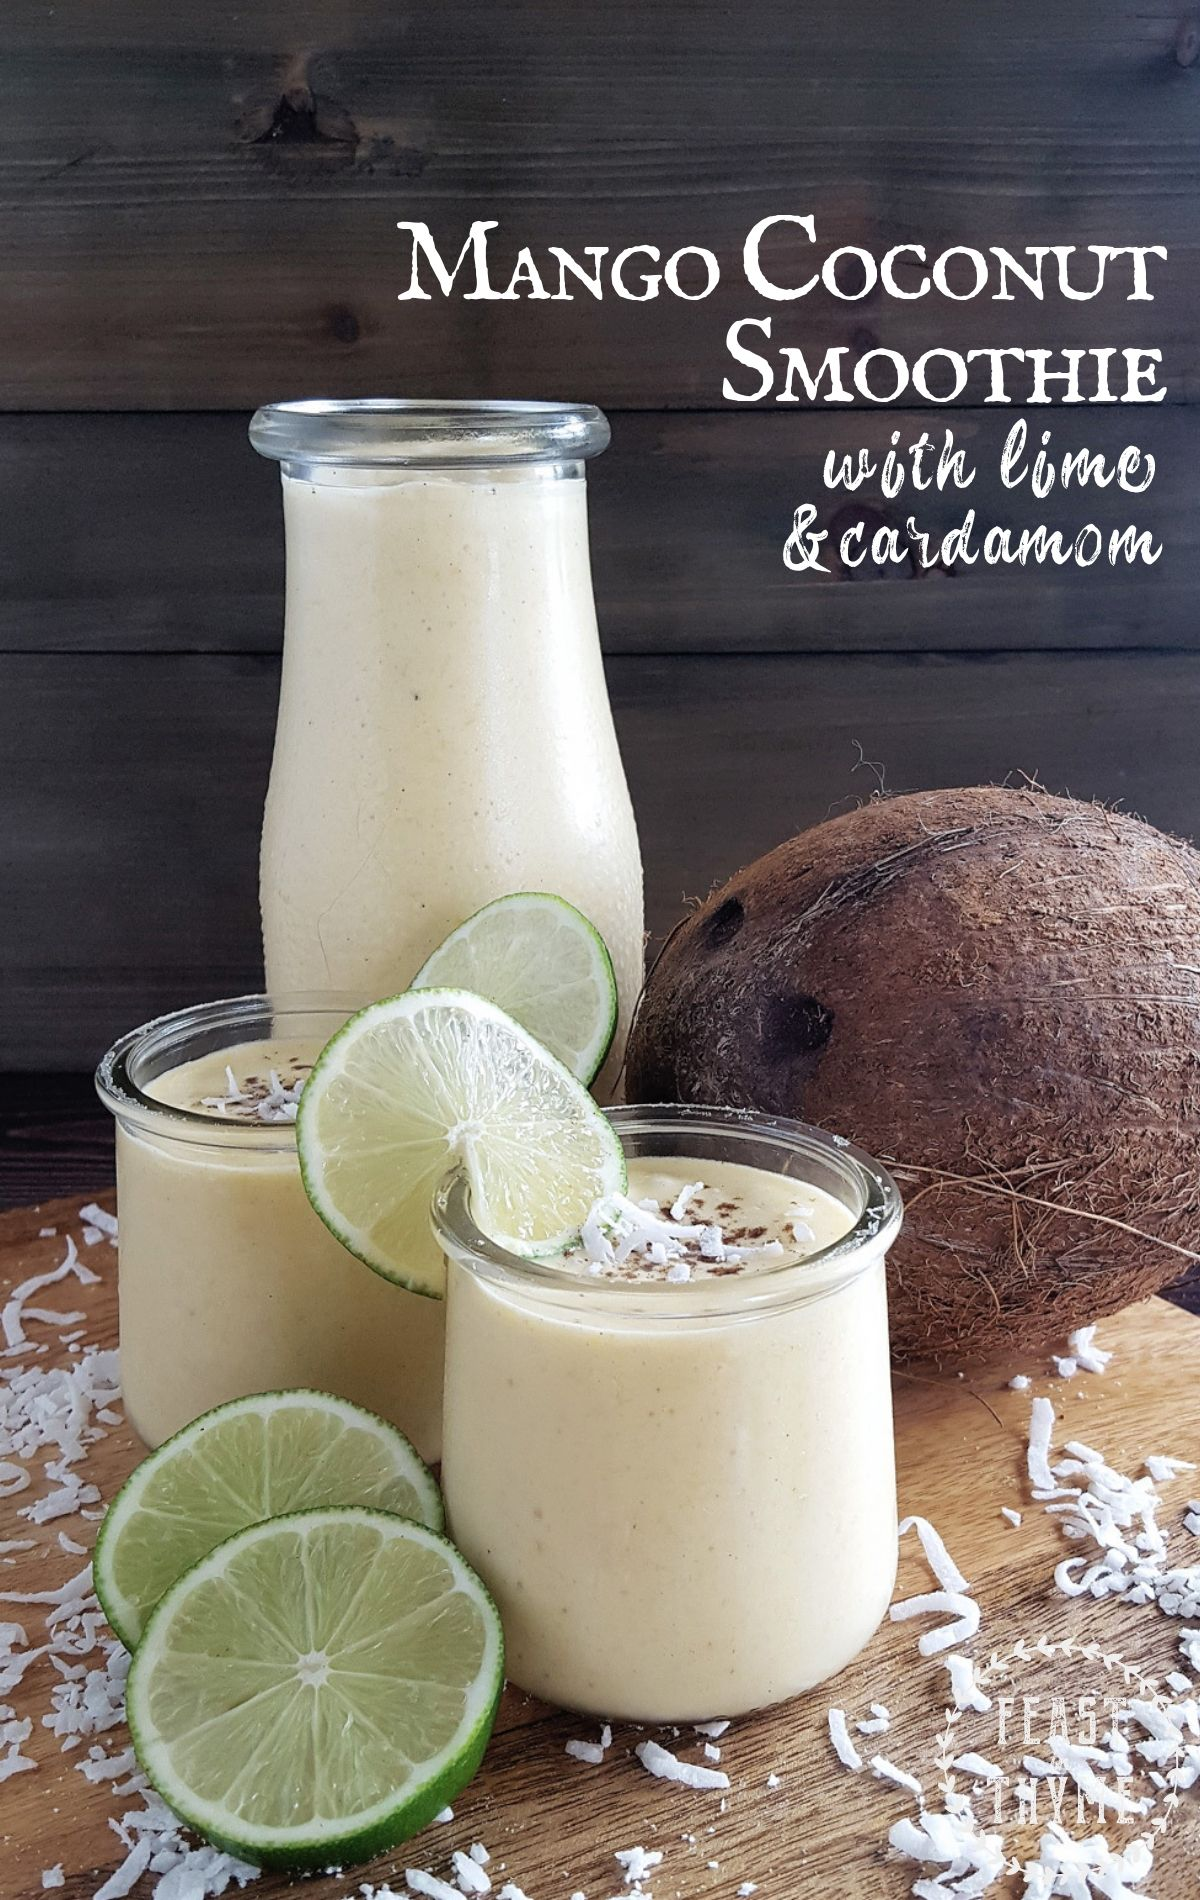 Mango Coconut Smoothie with Lime & Cardamom images